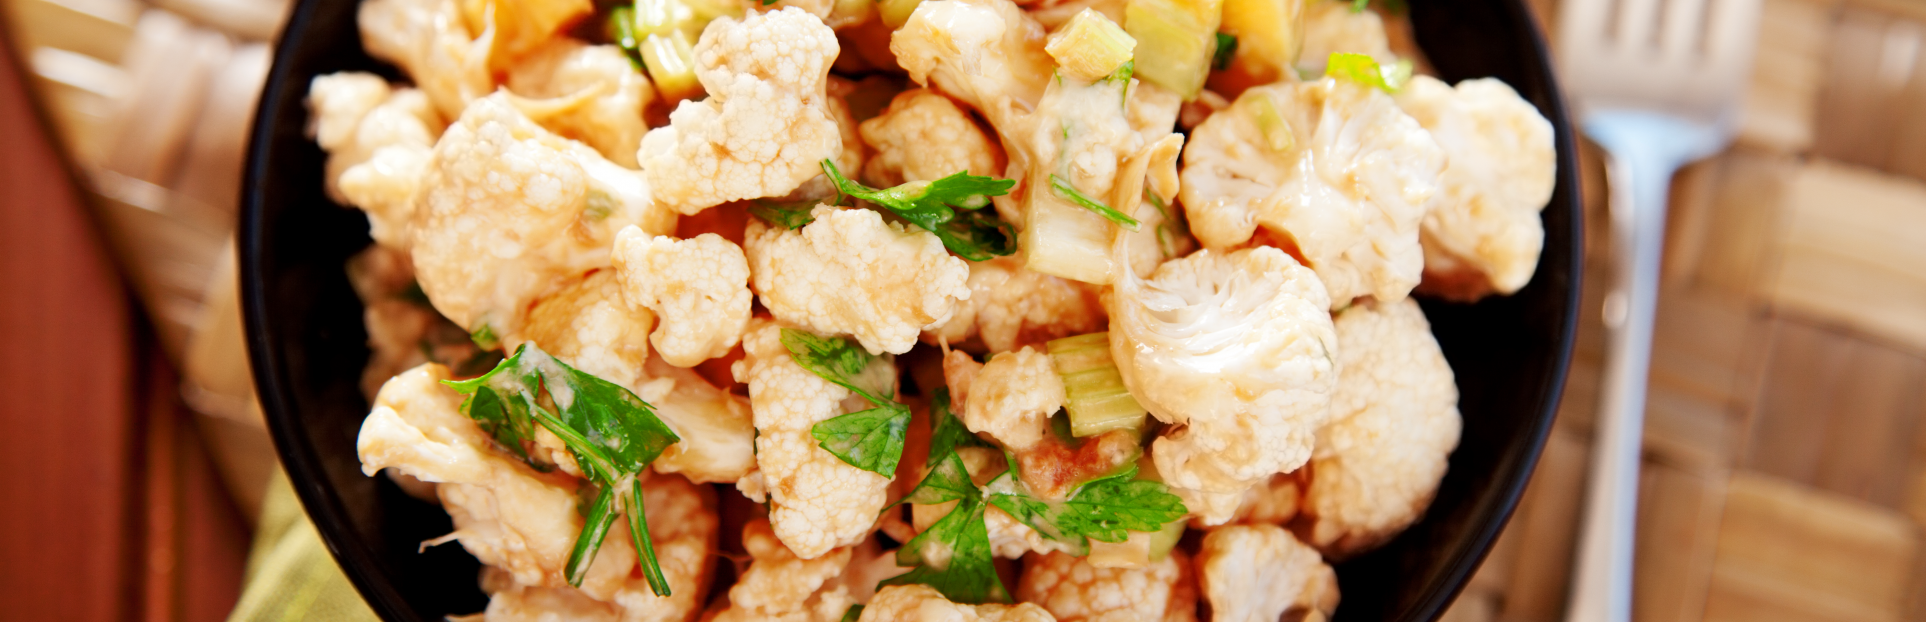 Cauliflower_image